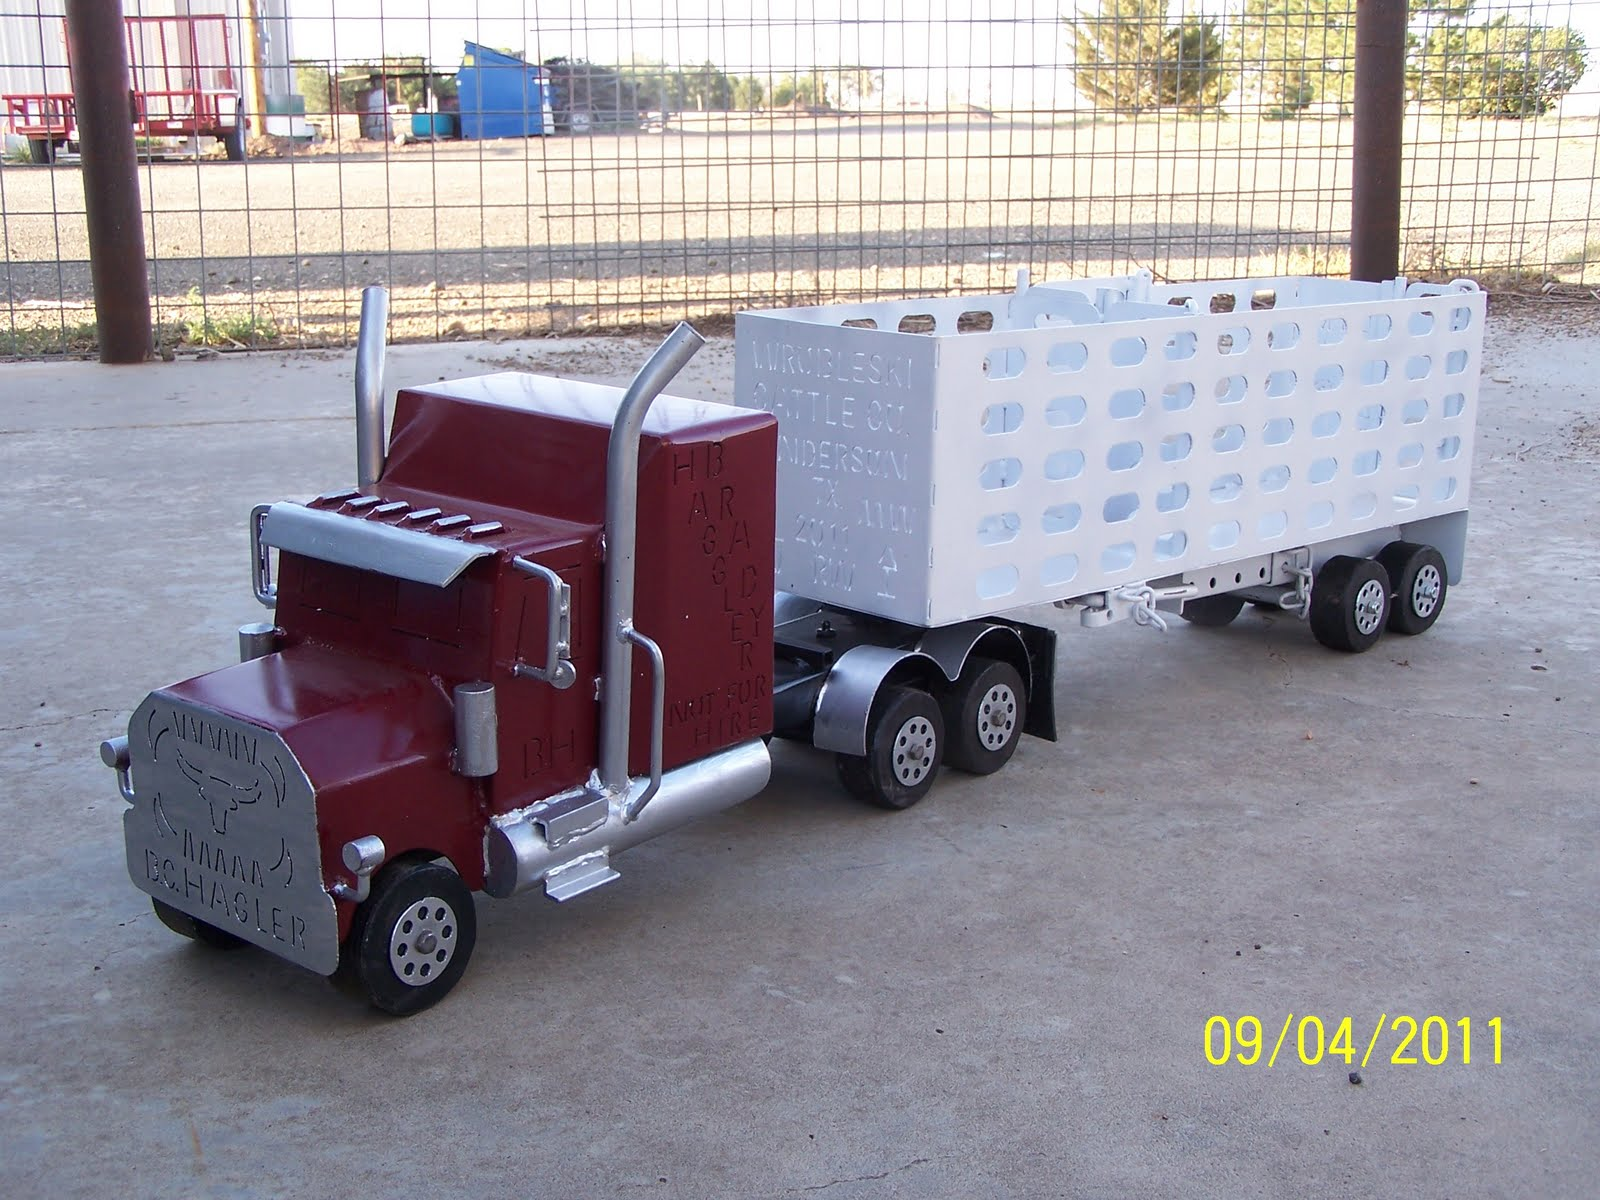 Toy Semi Trucks And Trailers : The happy toy maker semi truck with trailer